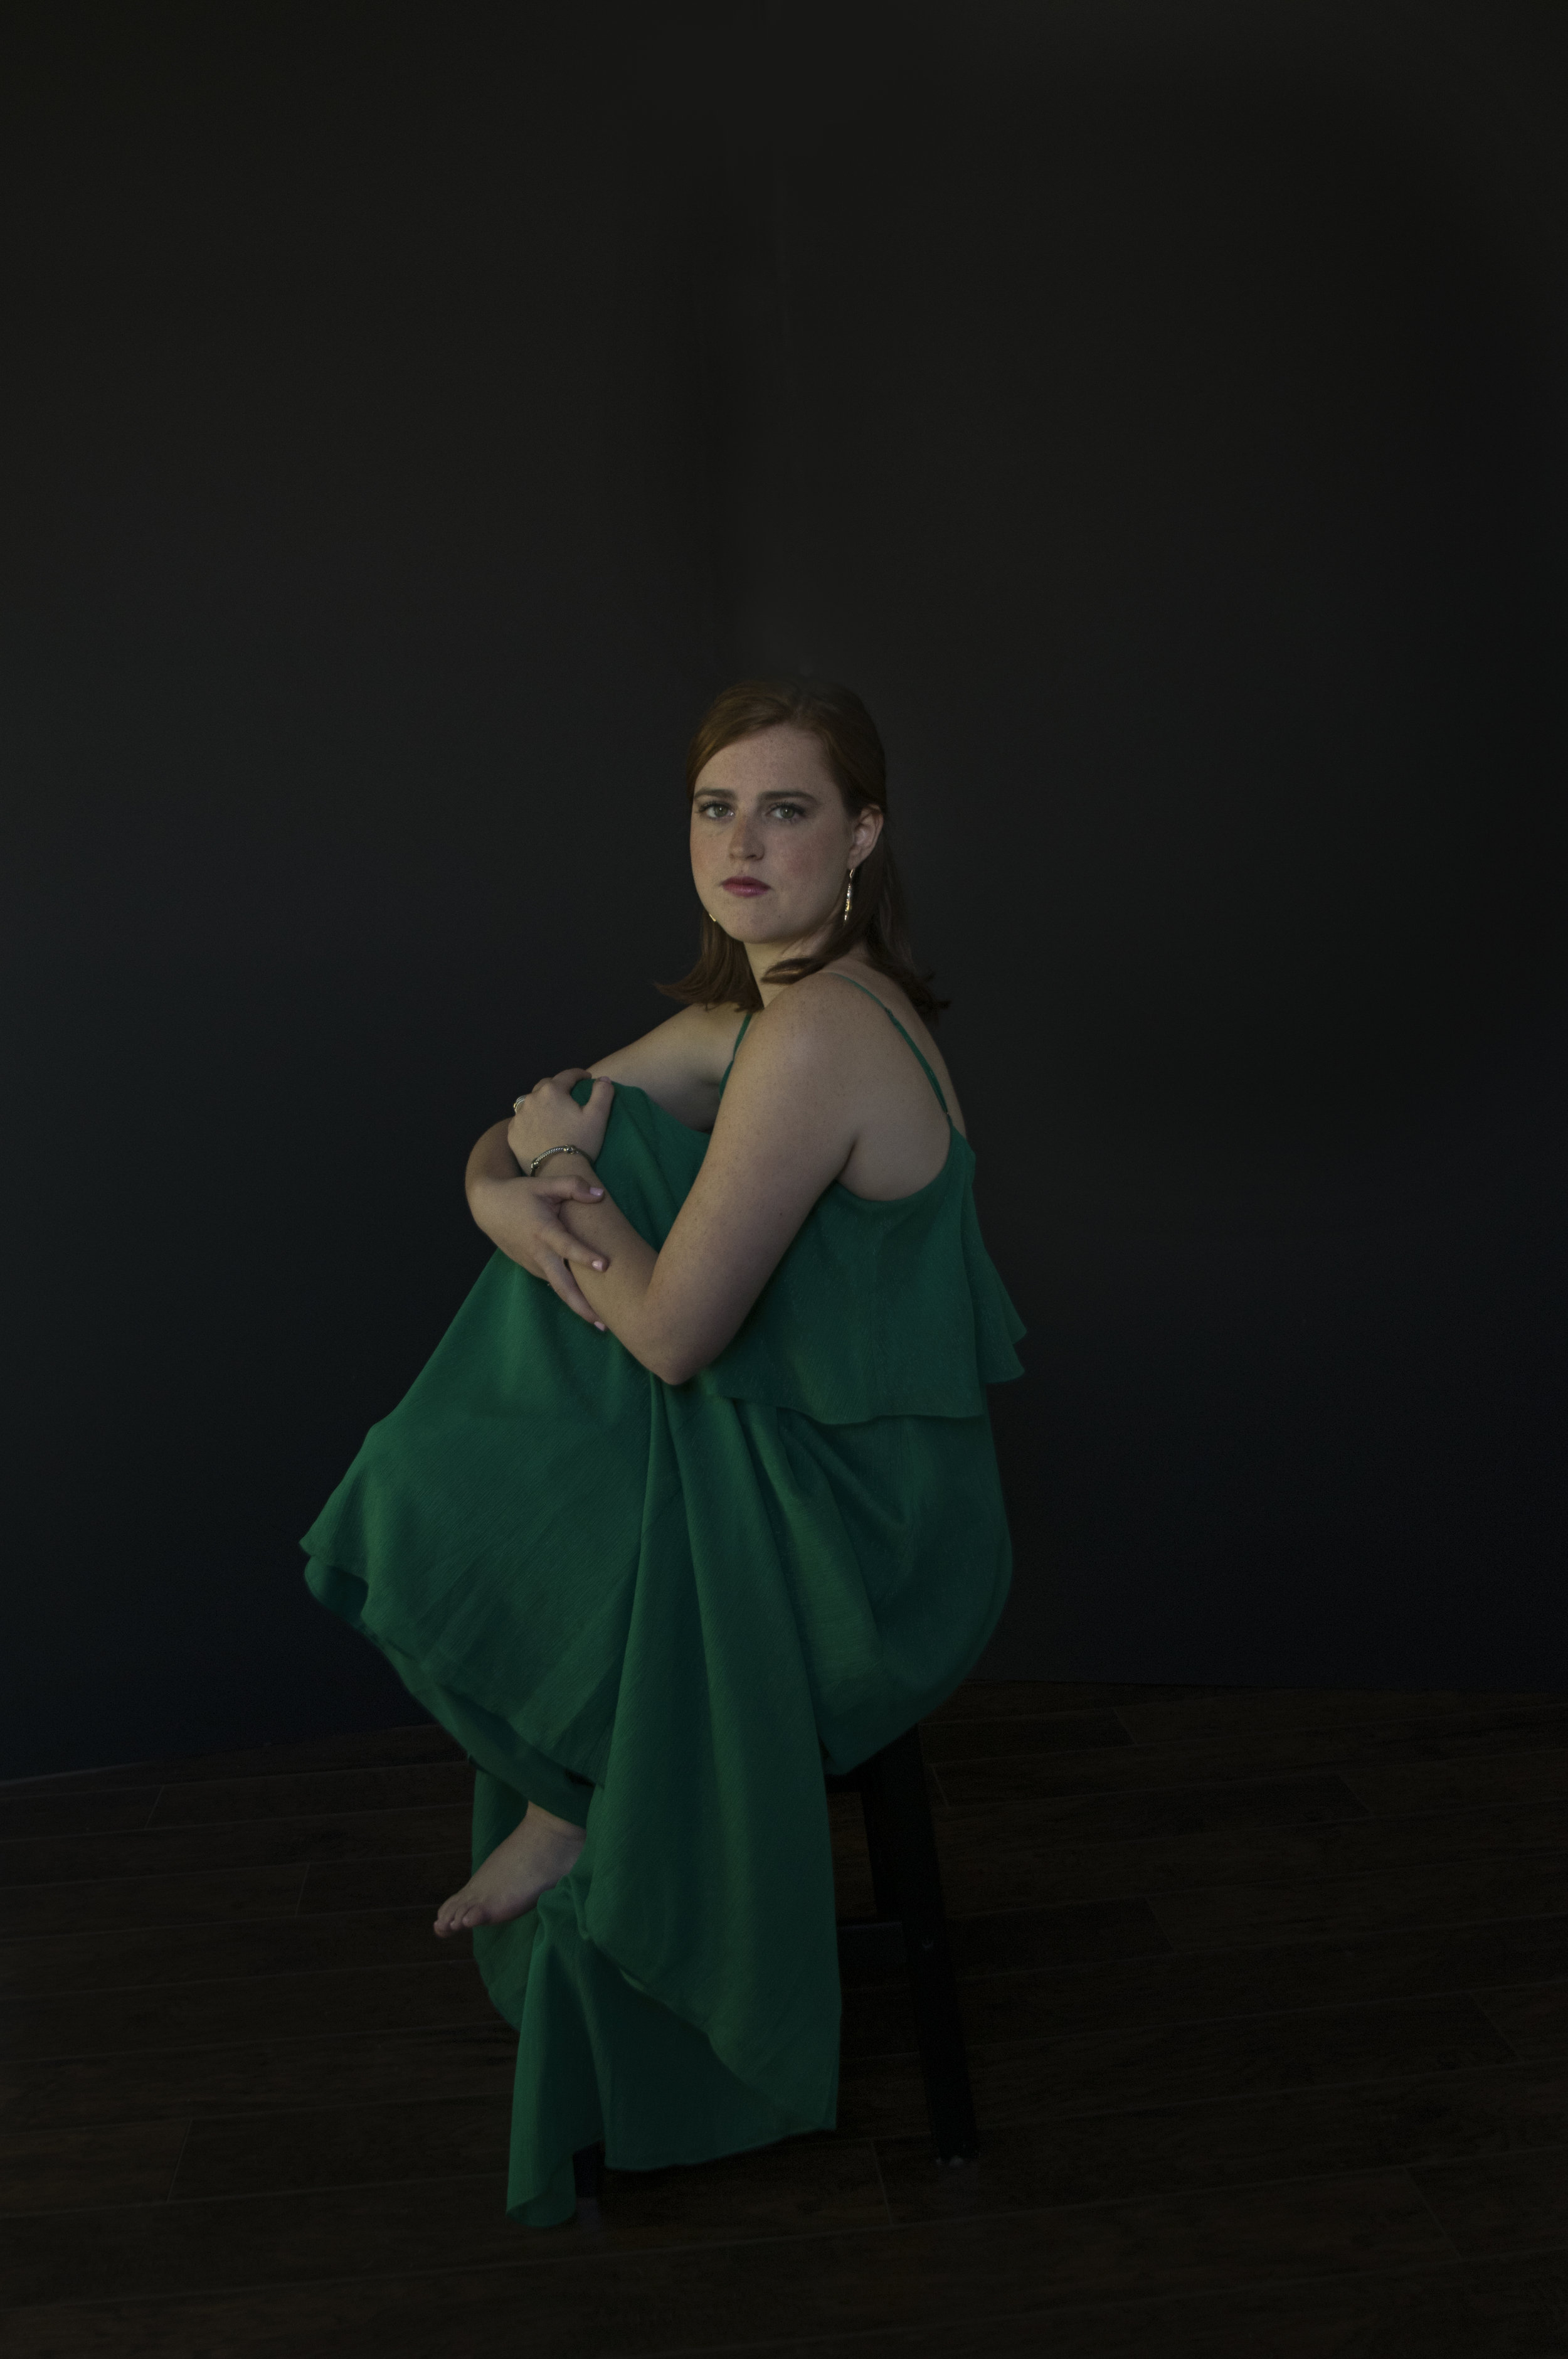 Heirloom Portrait of a Young Woman in a Green Dress